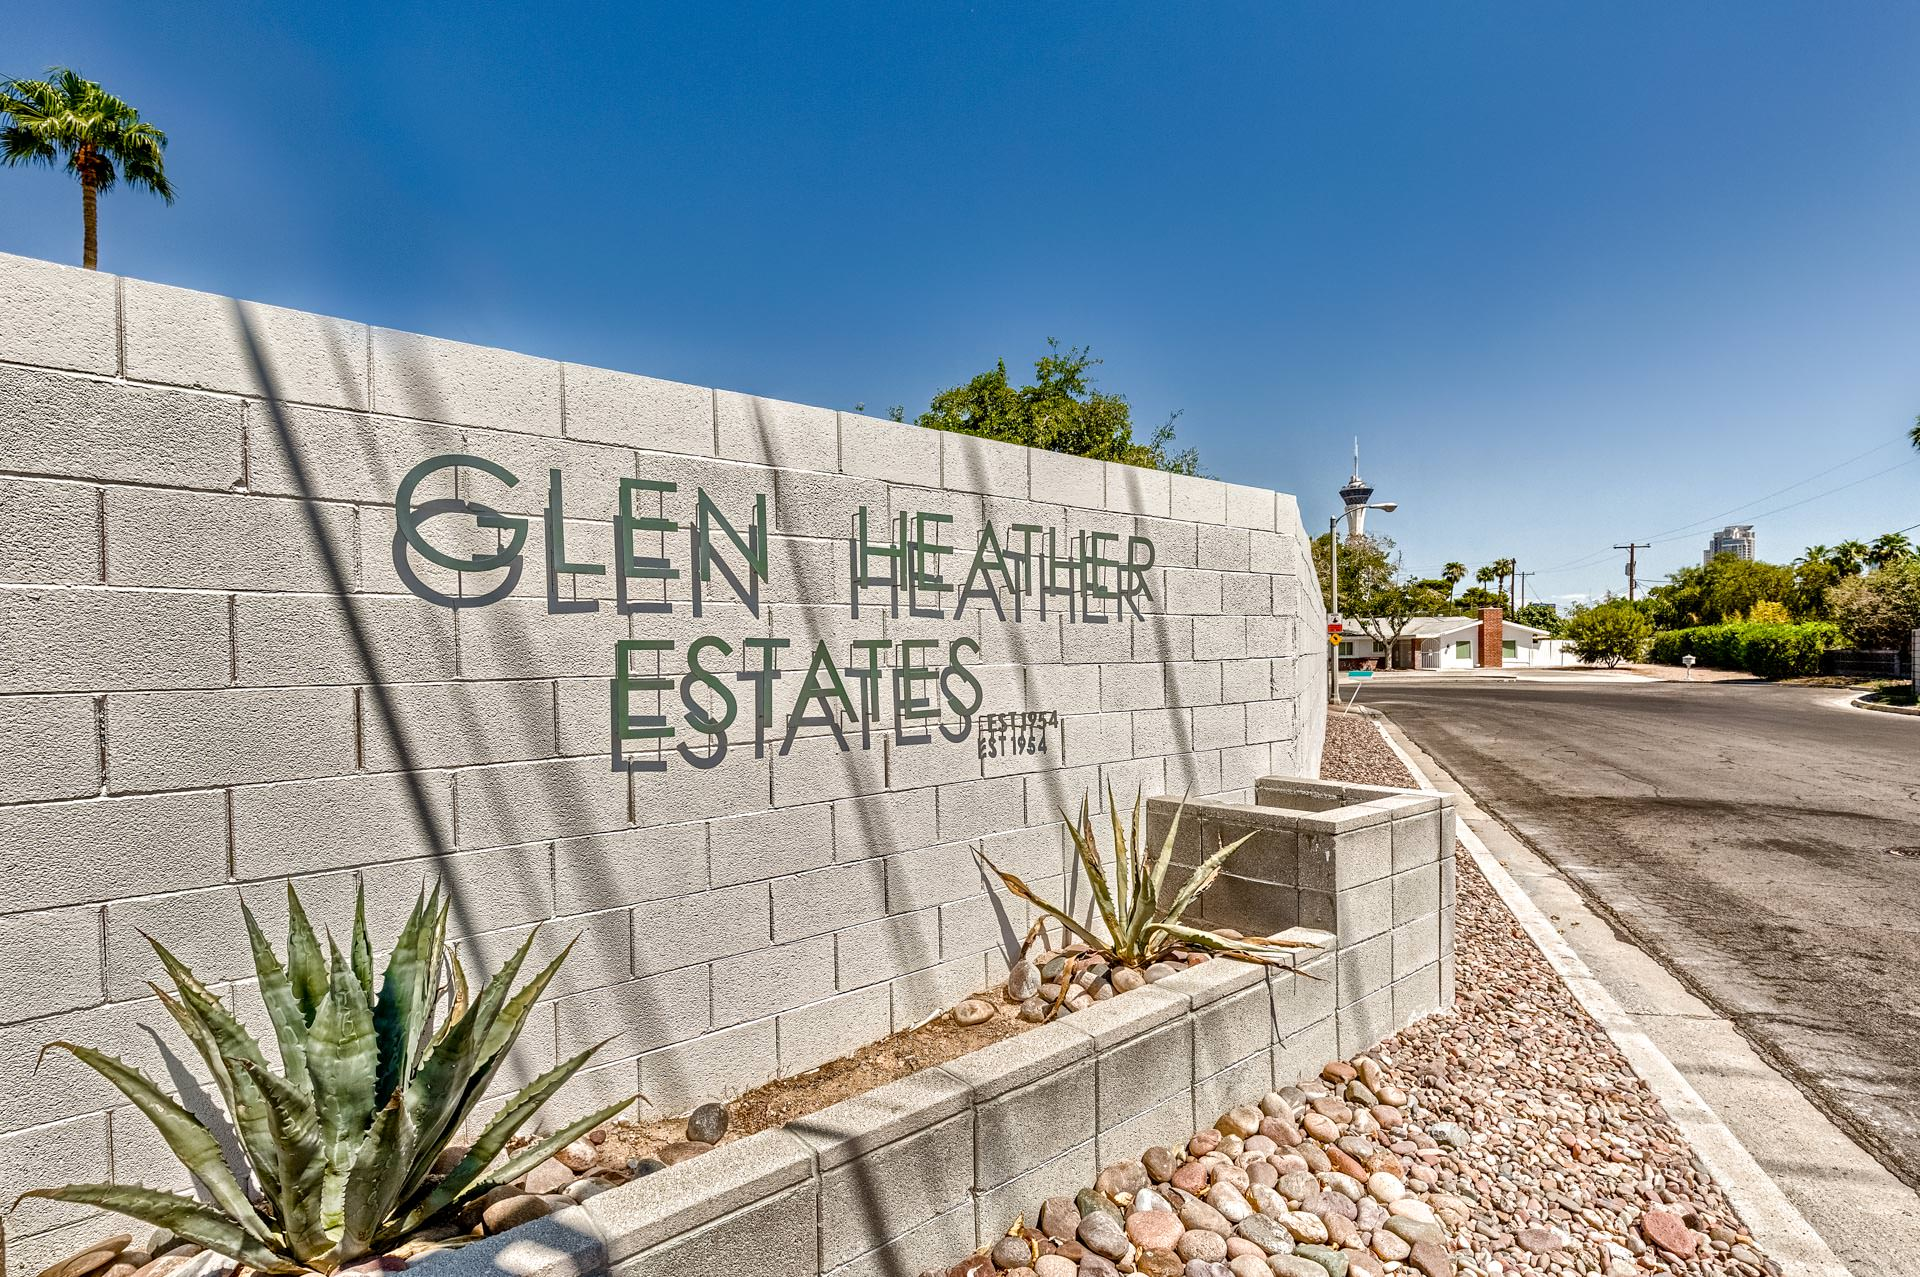 Glen Heather Estates Las Vegas Homes for Sale